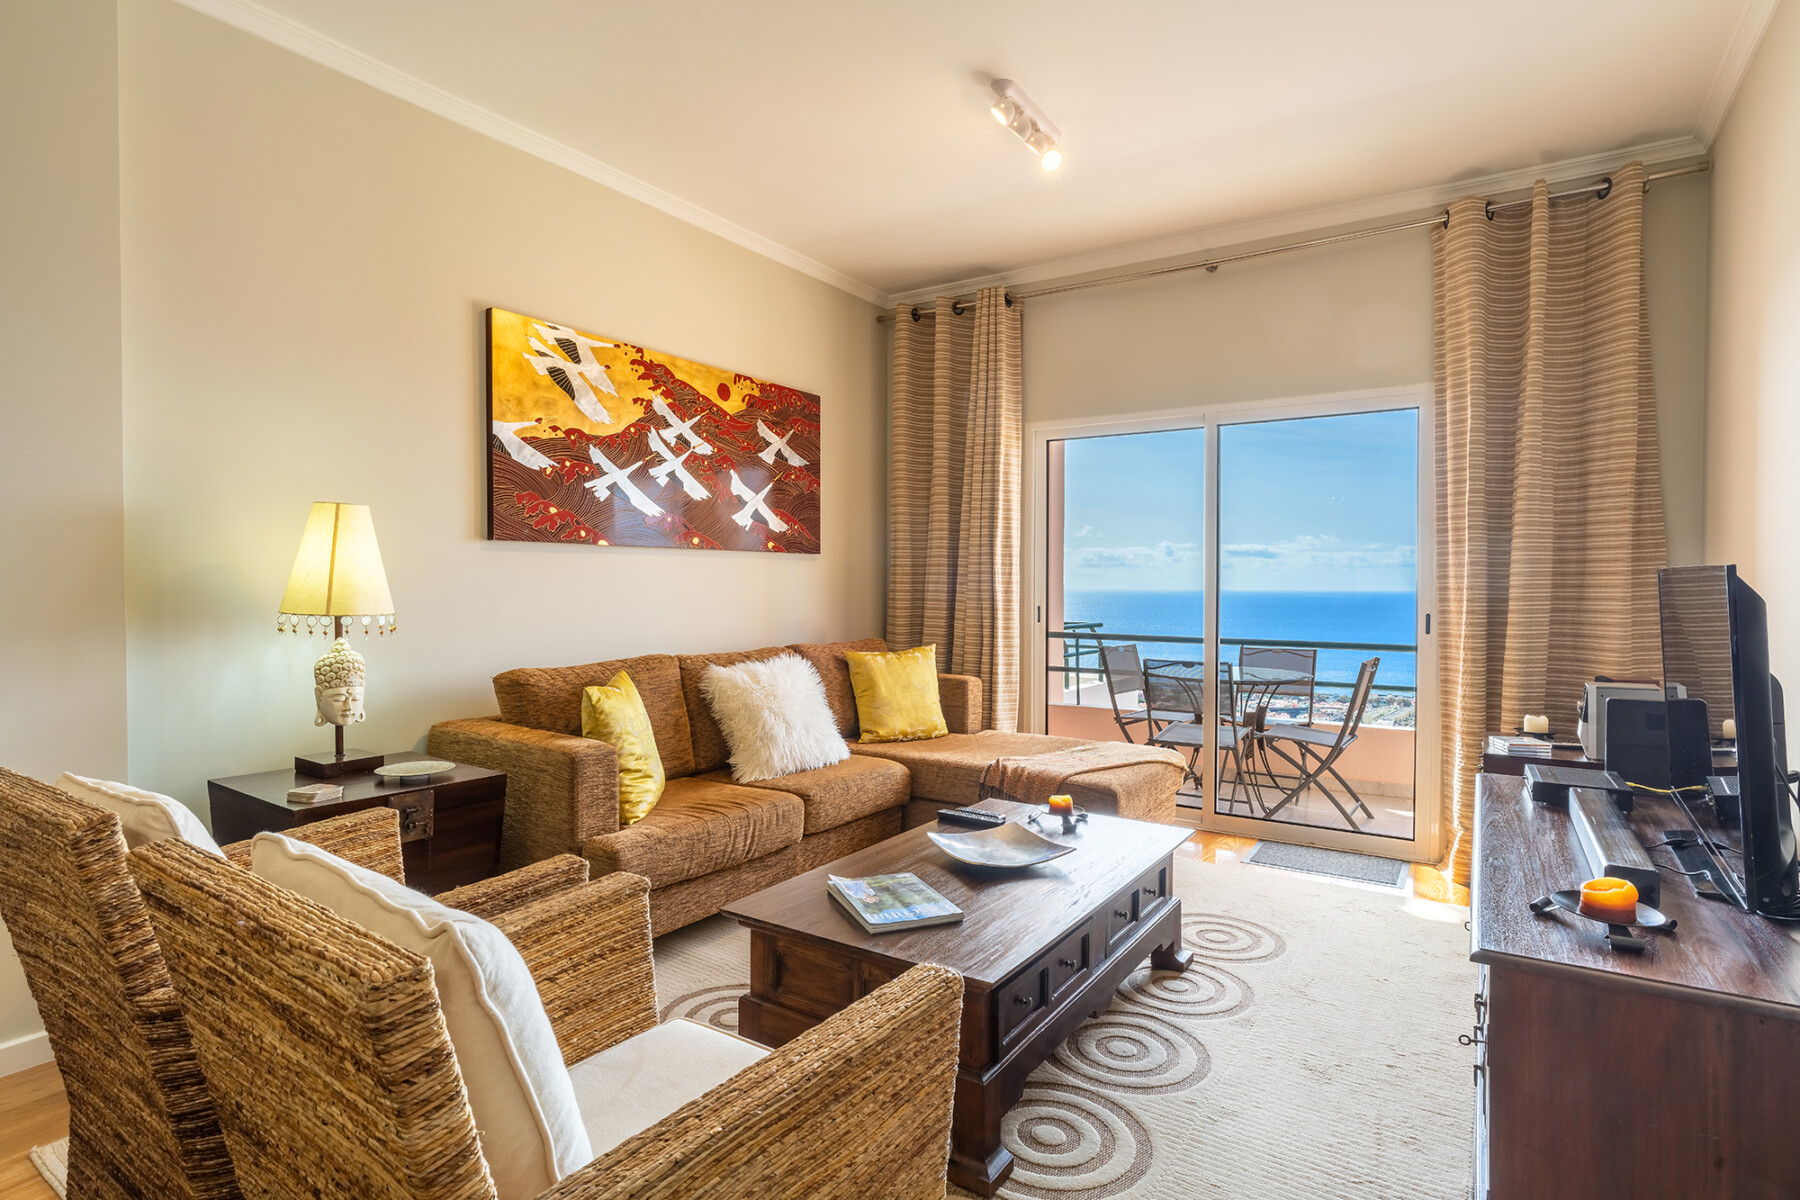 Stylish apartment with balcony and amazing views over Funchal and the sea.